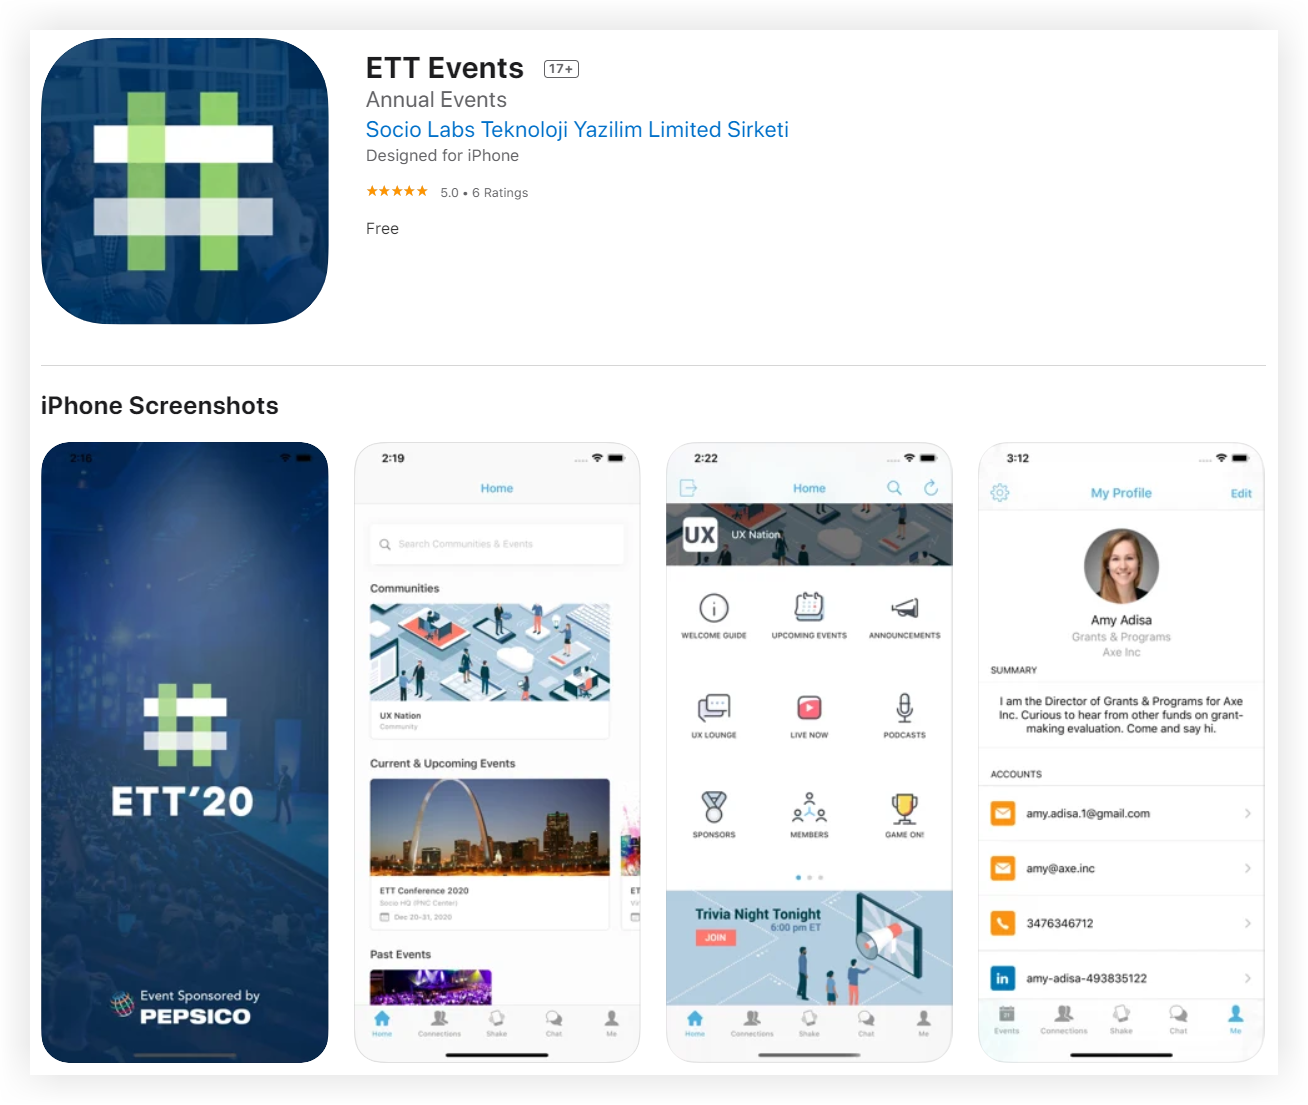 Screenshot showing the App Store page for the ETT Events app.